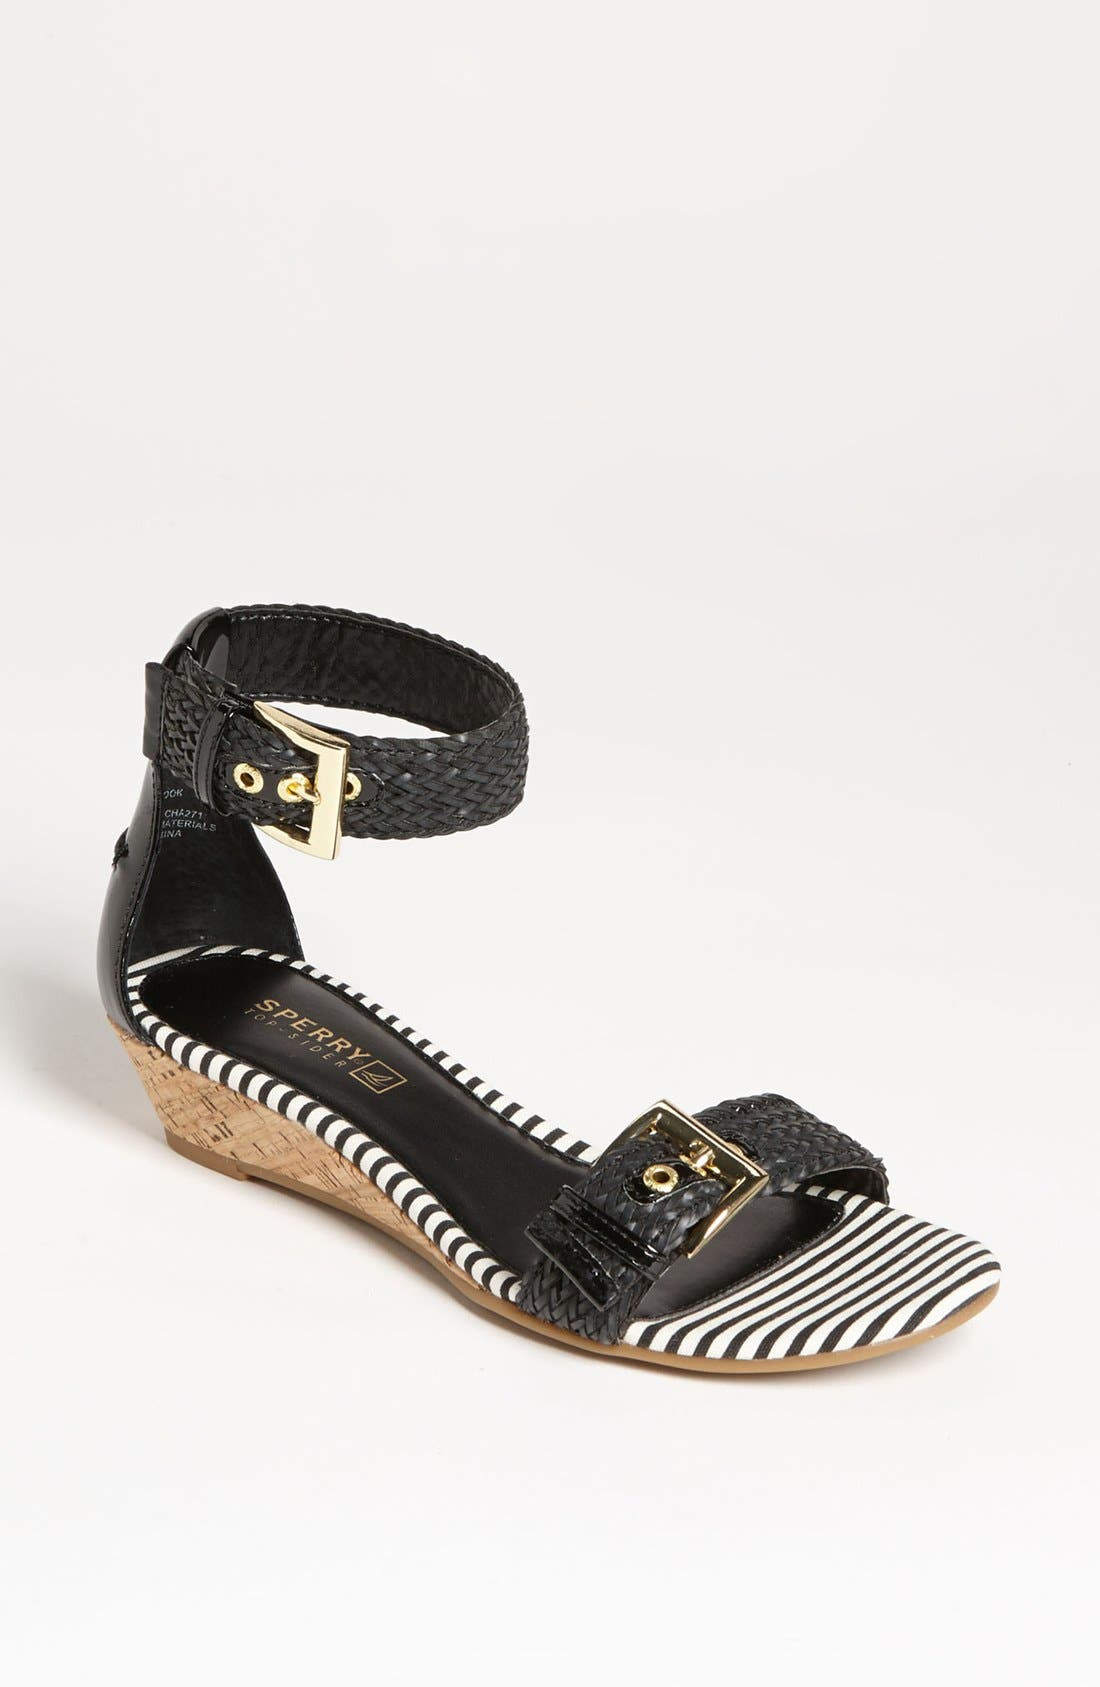 SPERRY Top-Sider<sup>®</sup> 'Lynbrook' Sandal, Main, color, 001